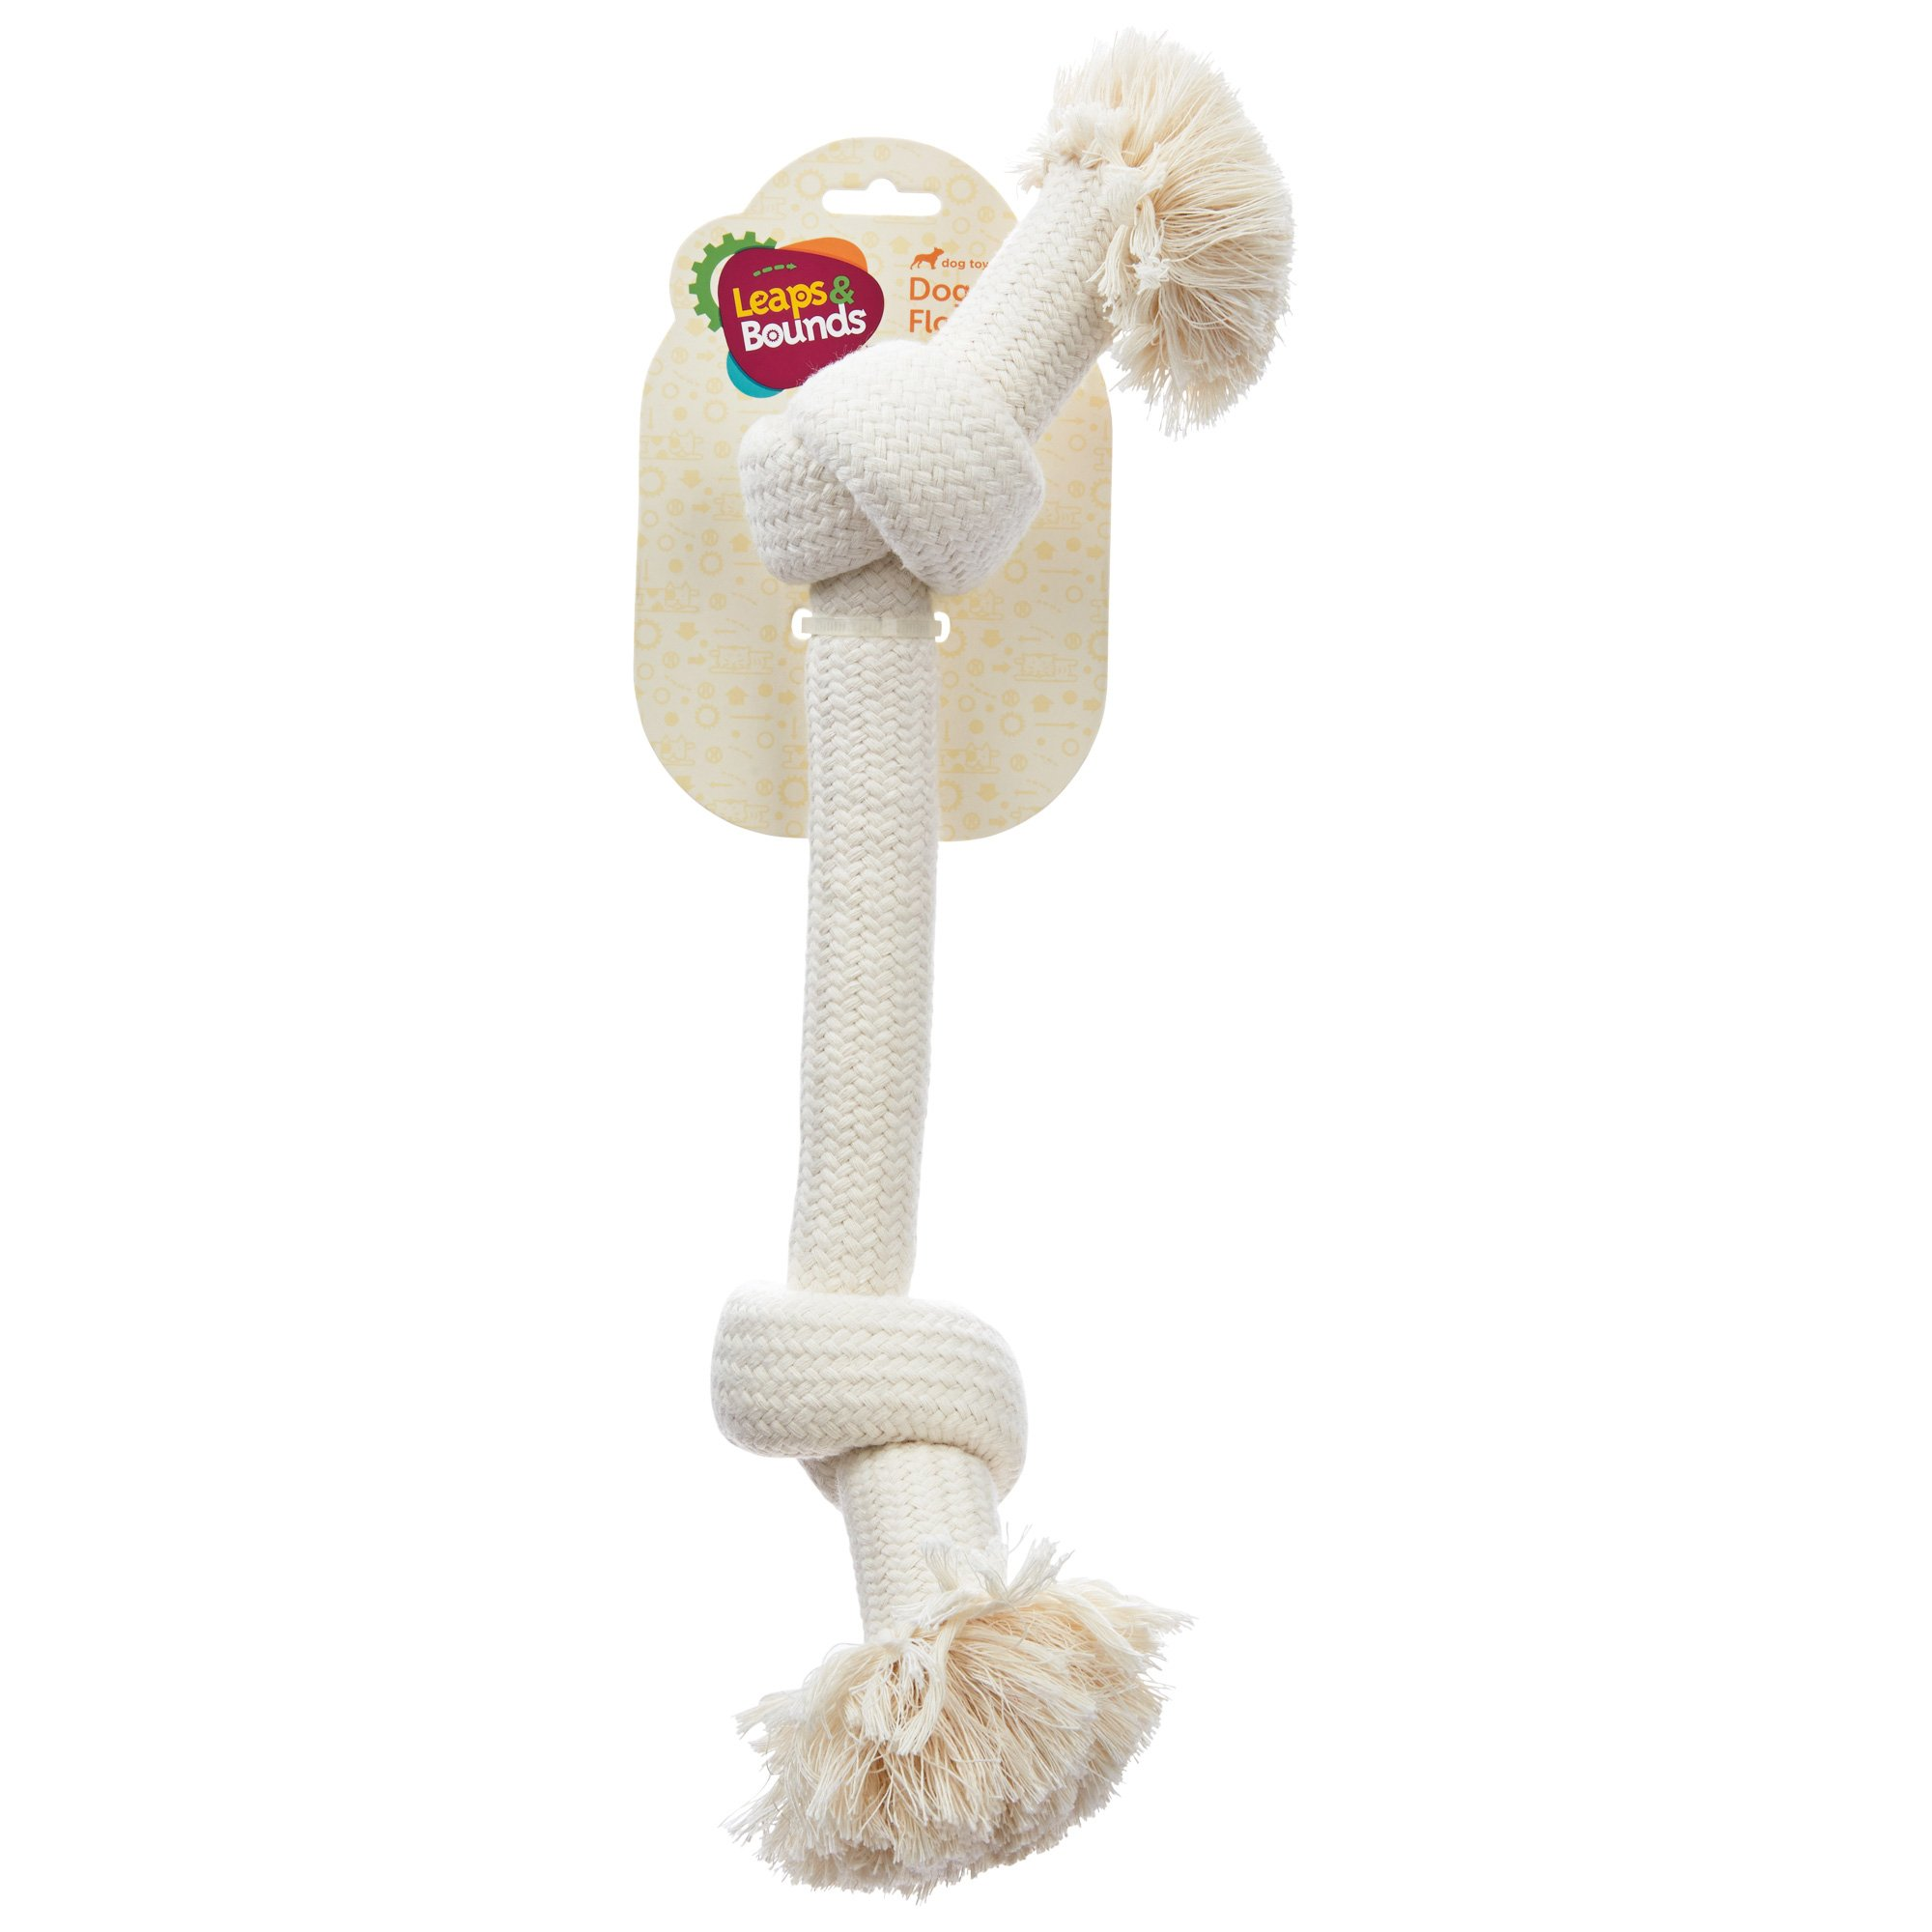 Leaps & Bounds Braided Rope Dog Toy